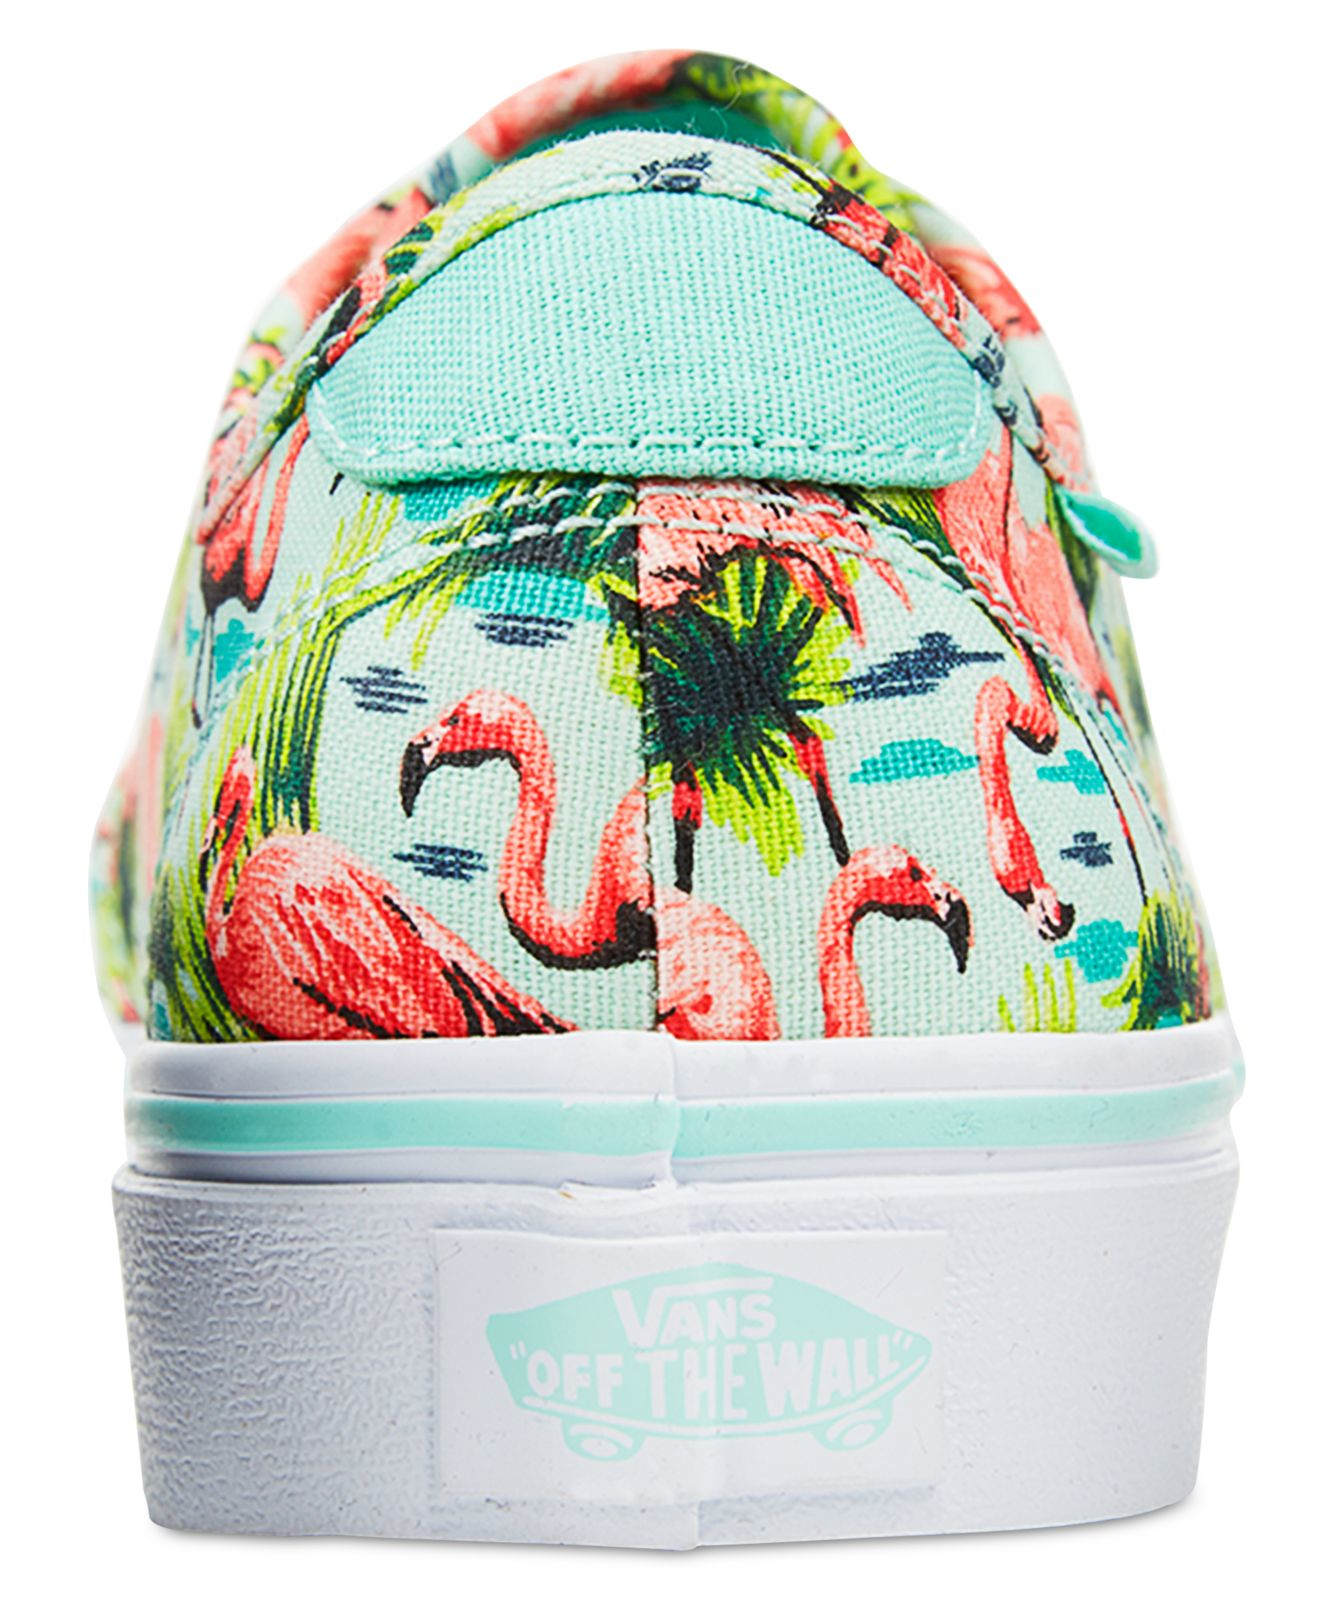 Hawaiian Print Vans Shoes | Vans Floral Shoes Men | Flamingo Vans